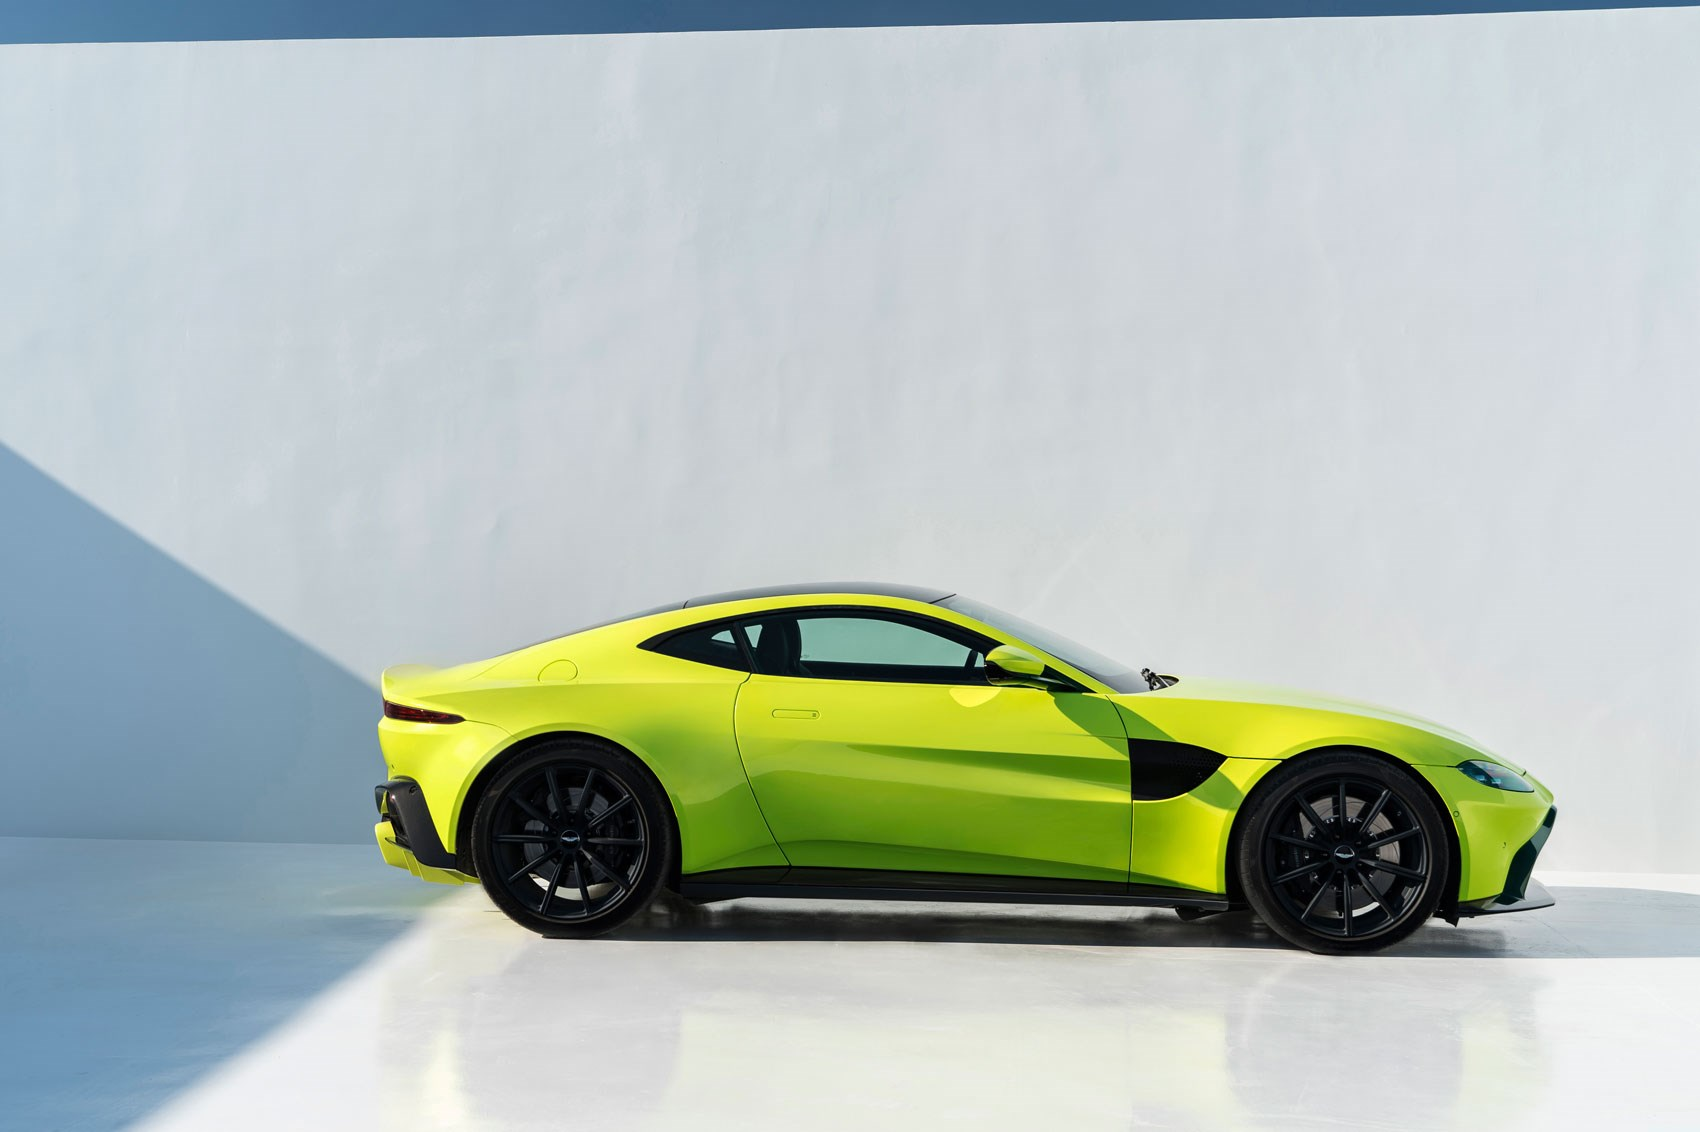 The new 2018 Aston Martin Vantage revealed in pictures CAR Magazine 1700x1132